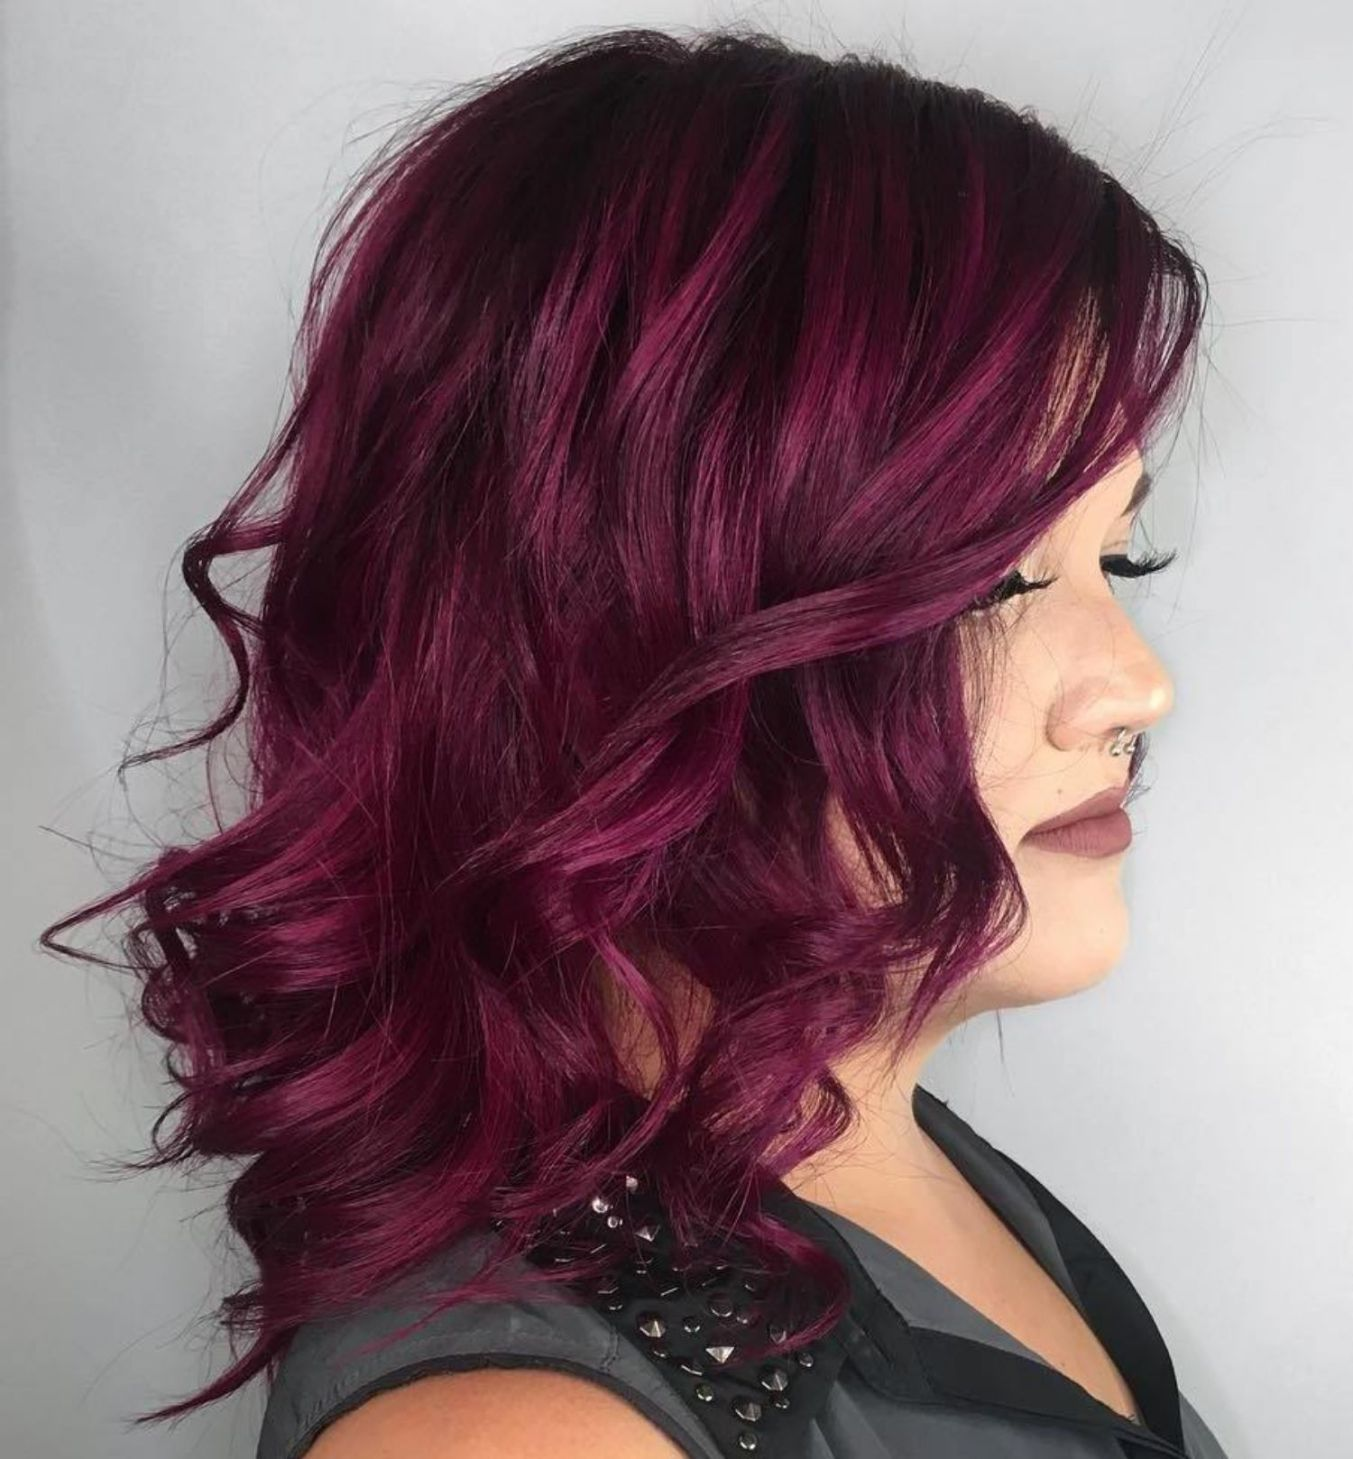 45 Shades Of Burgundy Hair Dark Burgundy Maroon Burgundy With Red Purple And Brown Highlights With Images Short Burgundy Hair Hair Color Plum Mulberry Hair Color